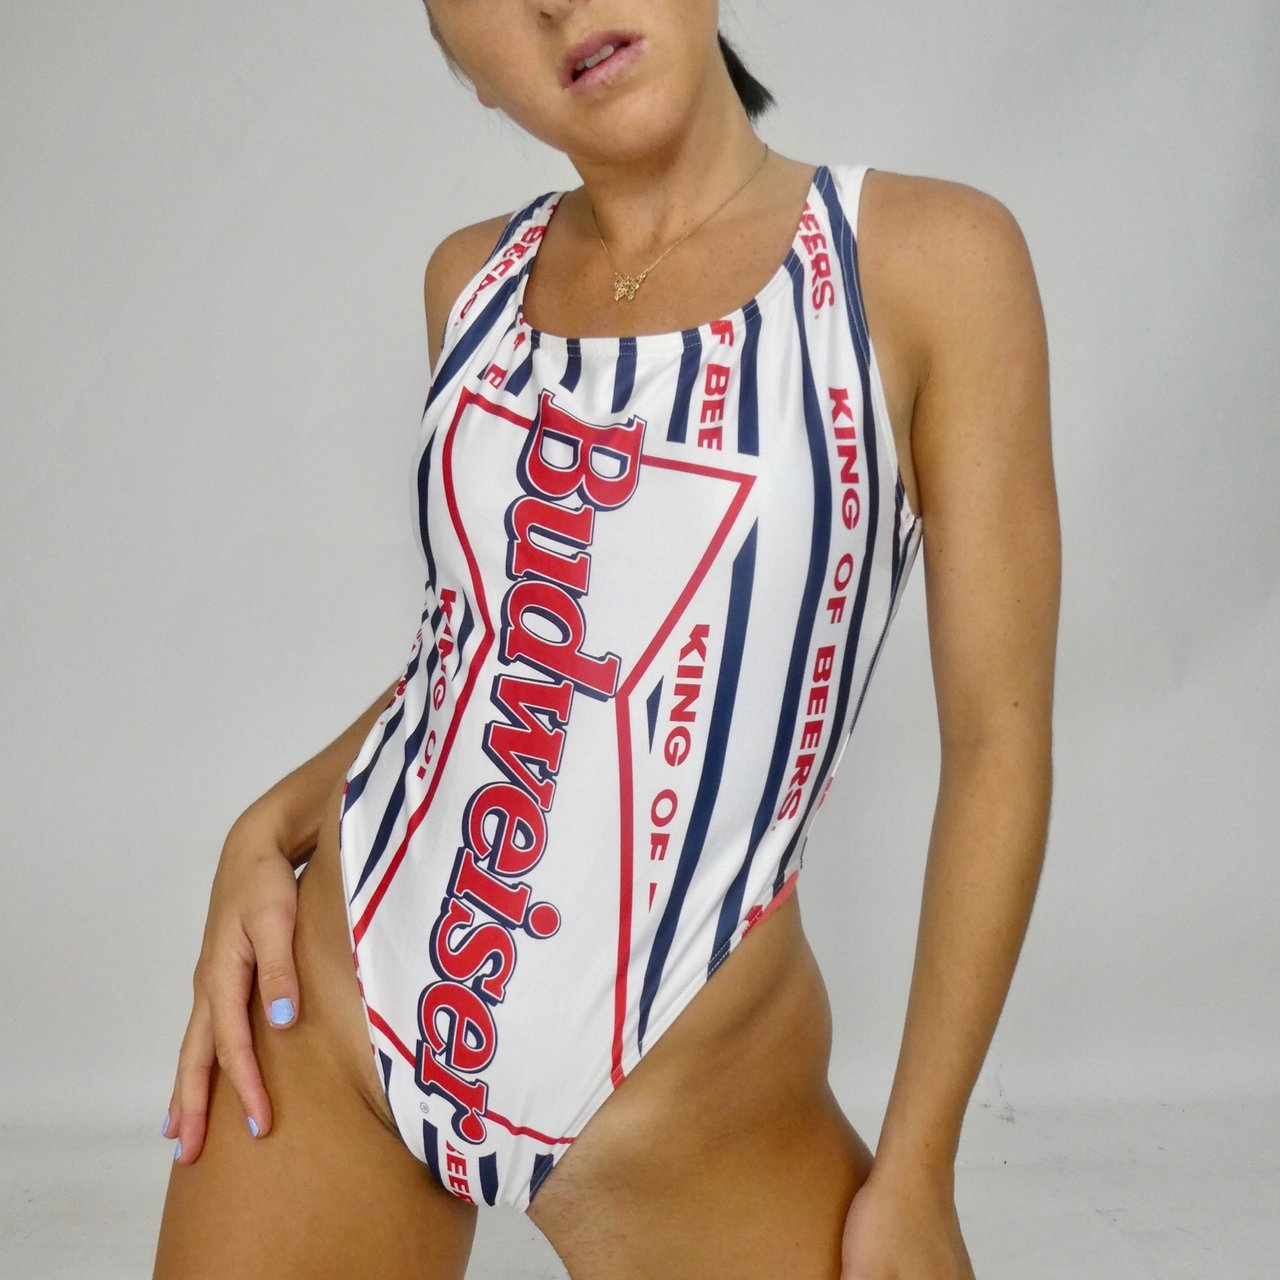 346acfe01b9c8 VINTAGE HIGH HIP BUDWEISER ONE PIECE BATHING SUIT! Size is - Depop